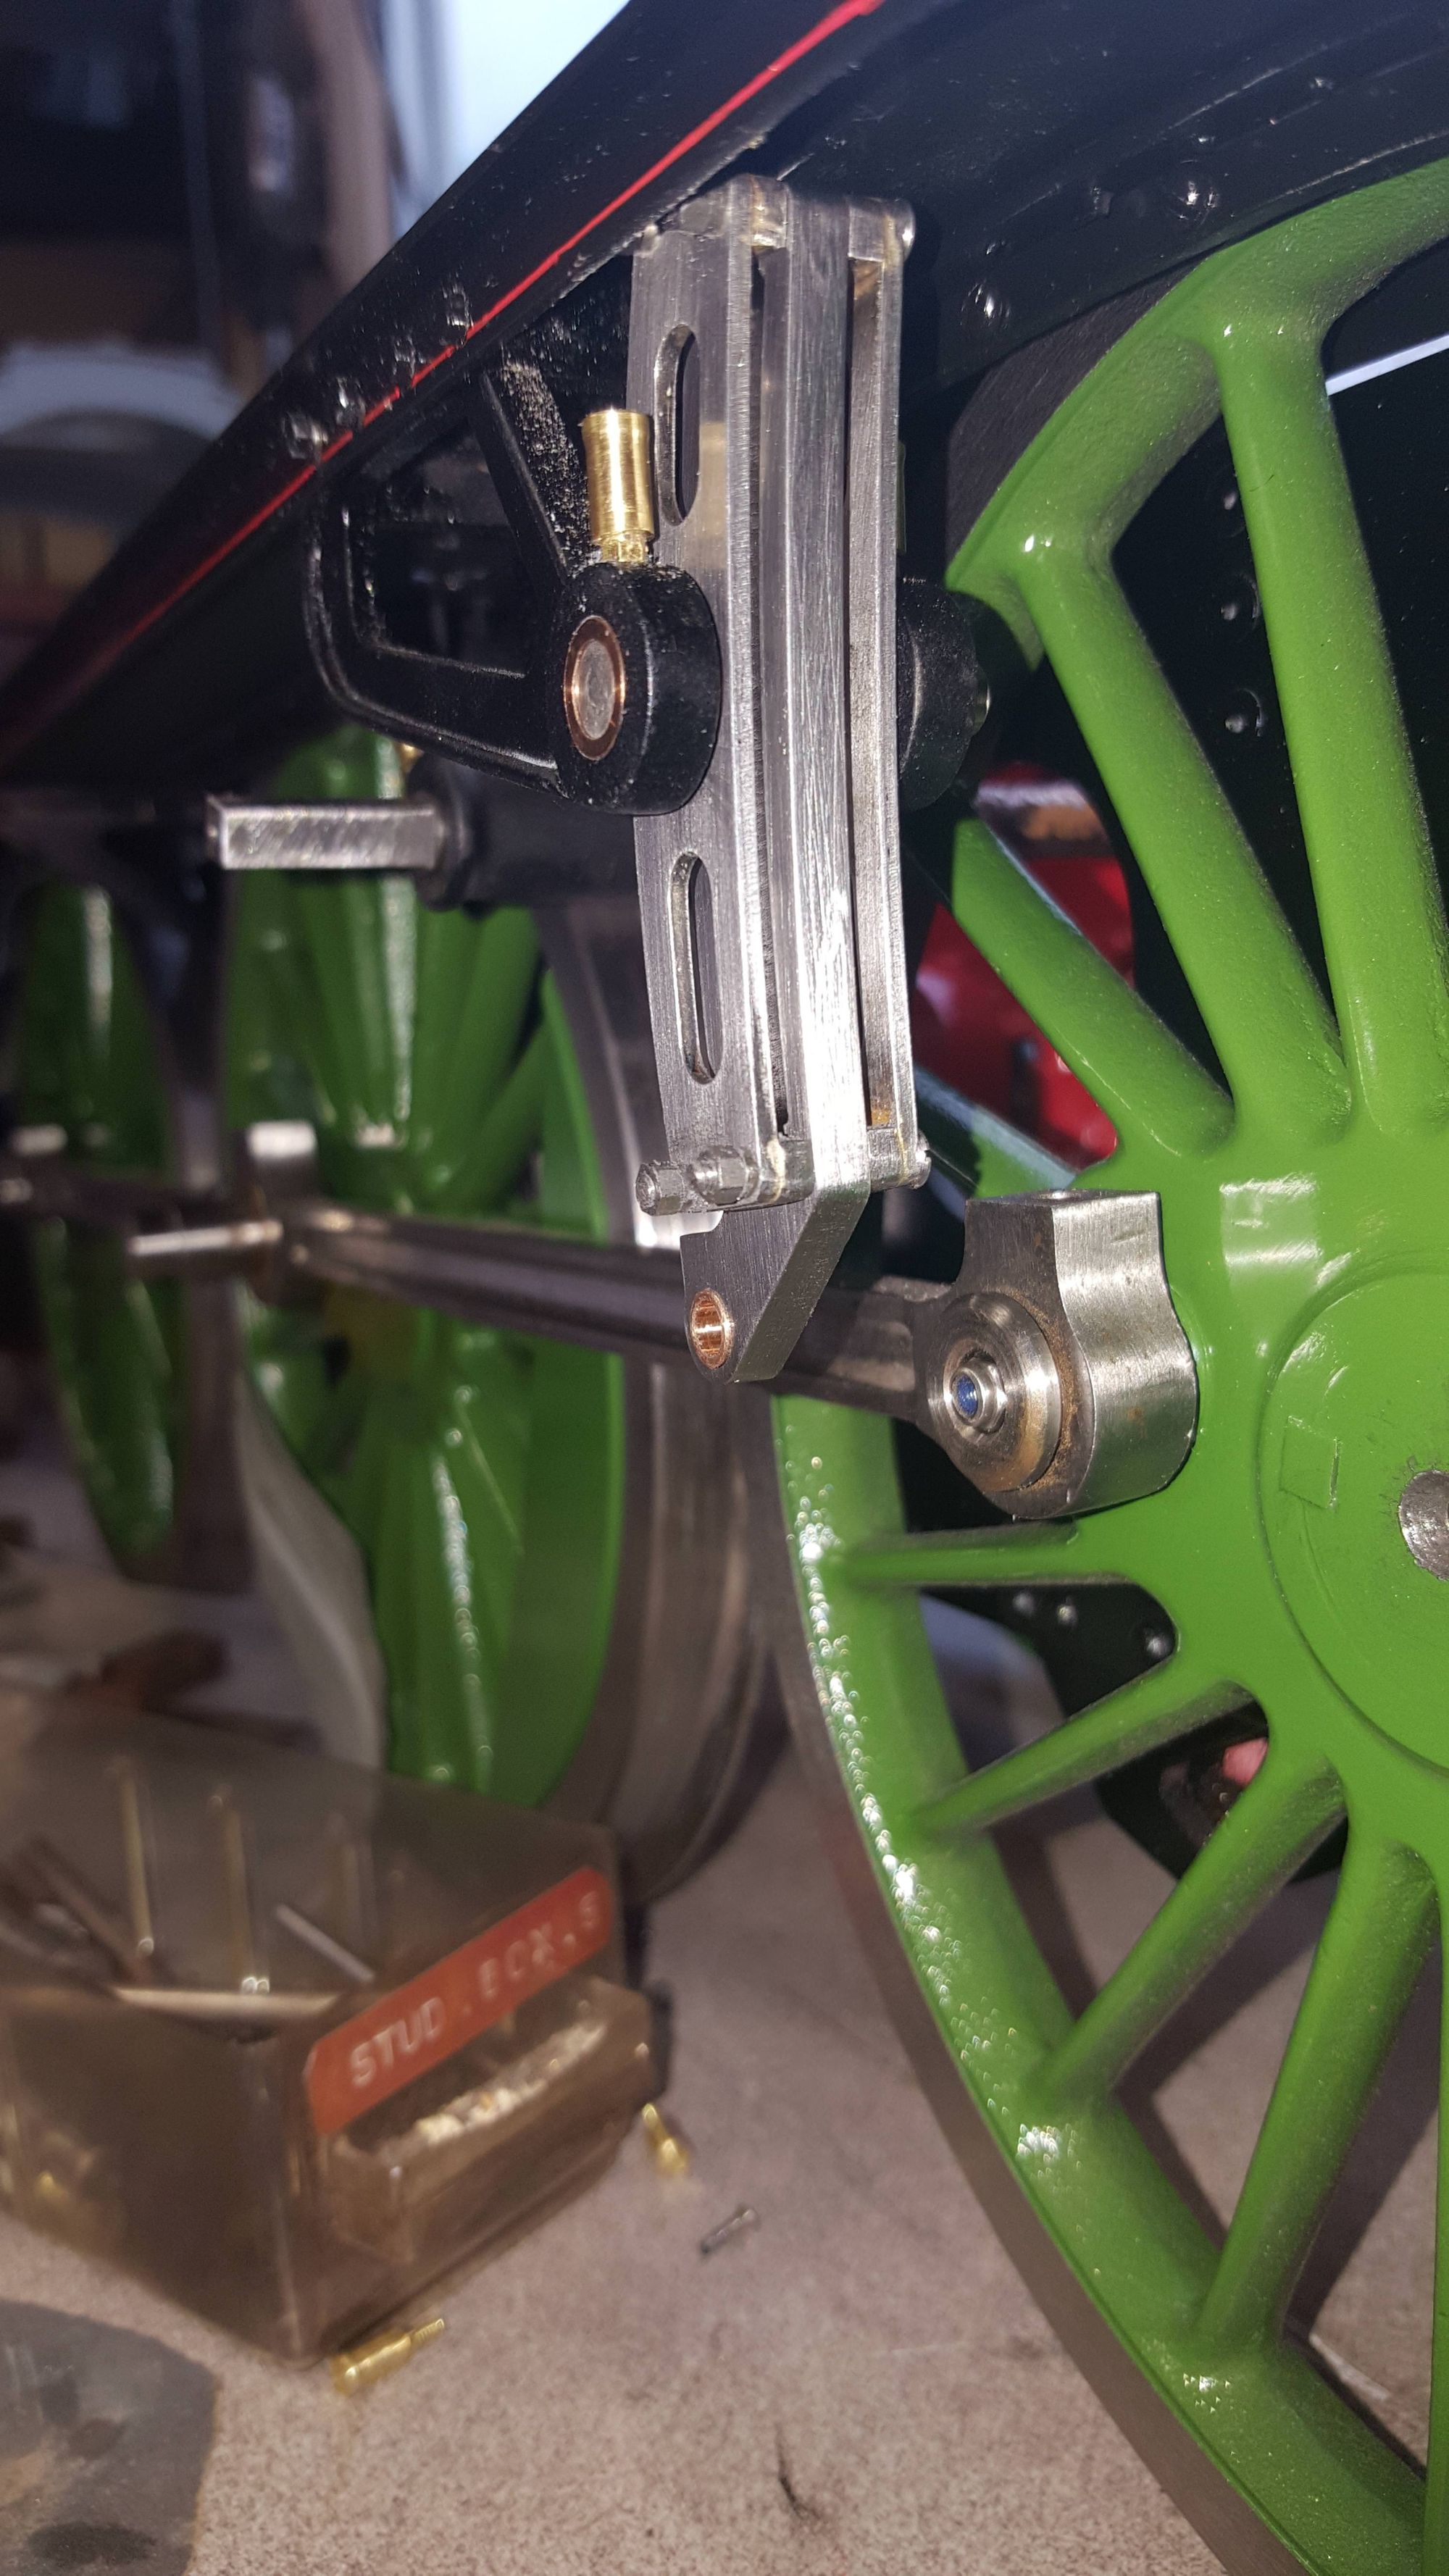 Expansion Links: Their bearing oil cups and the Weighshaft